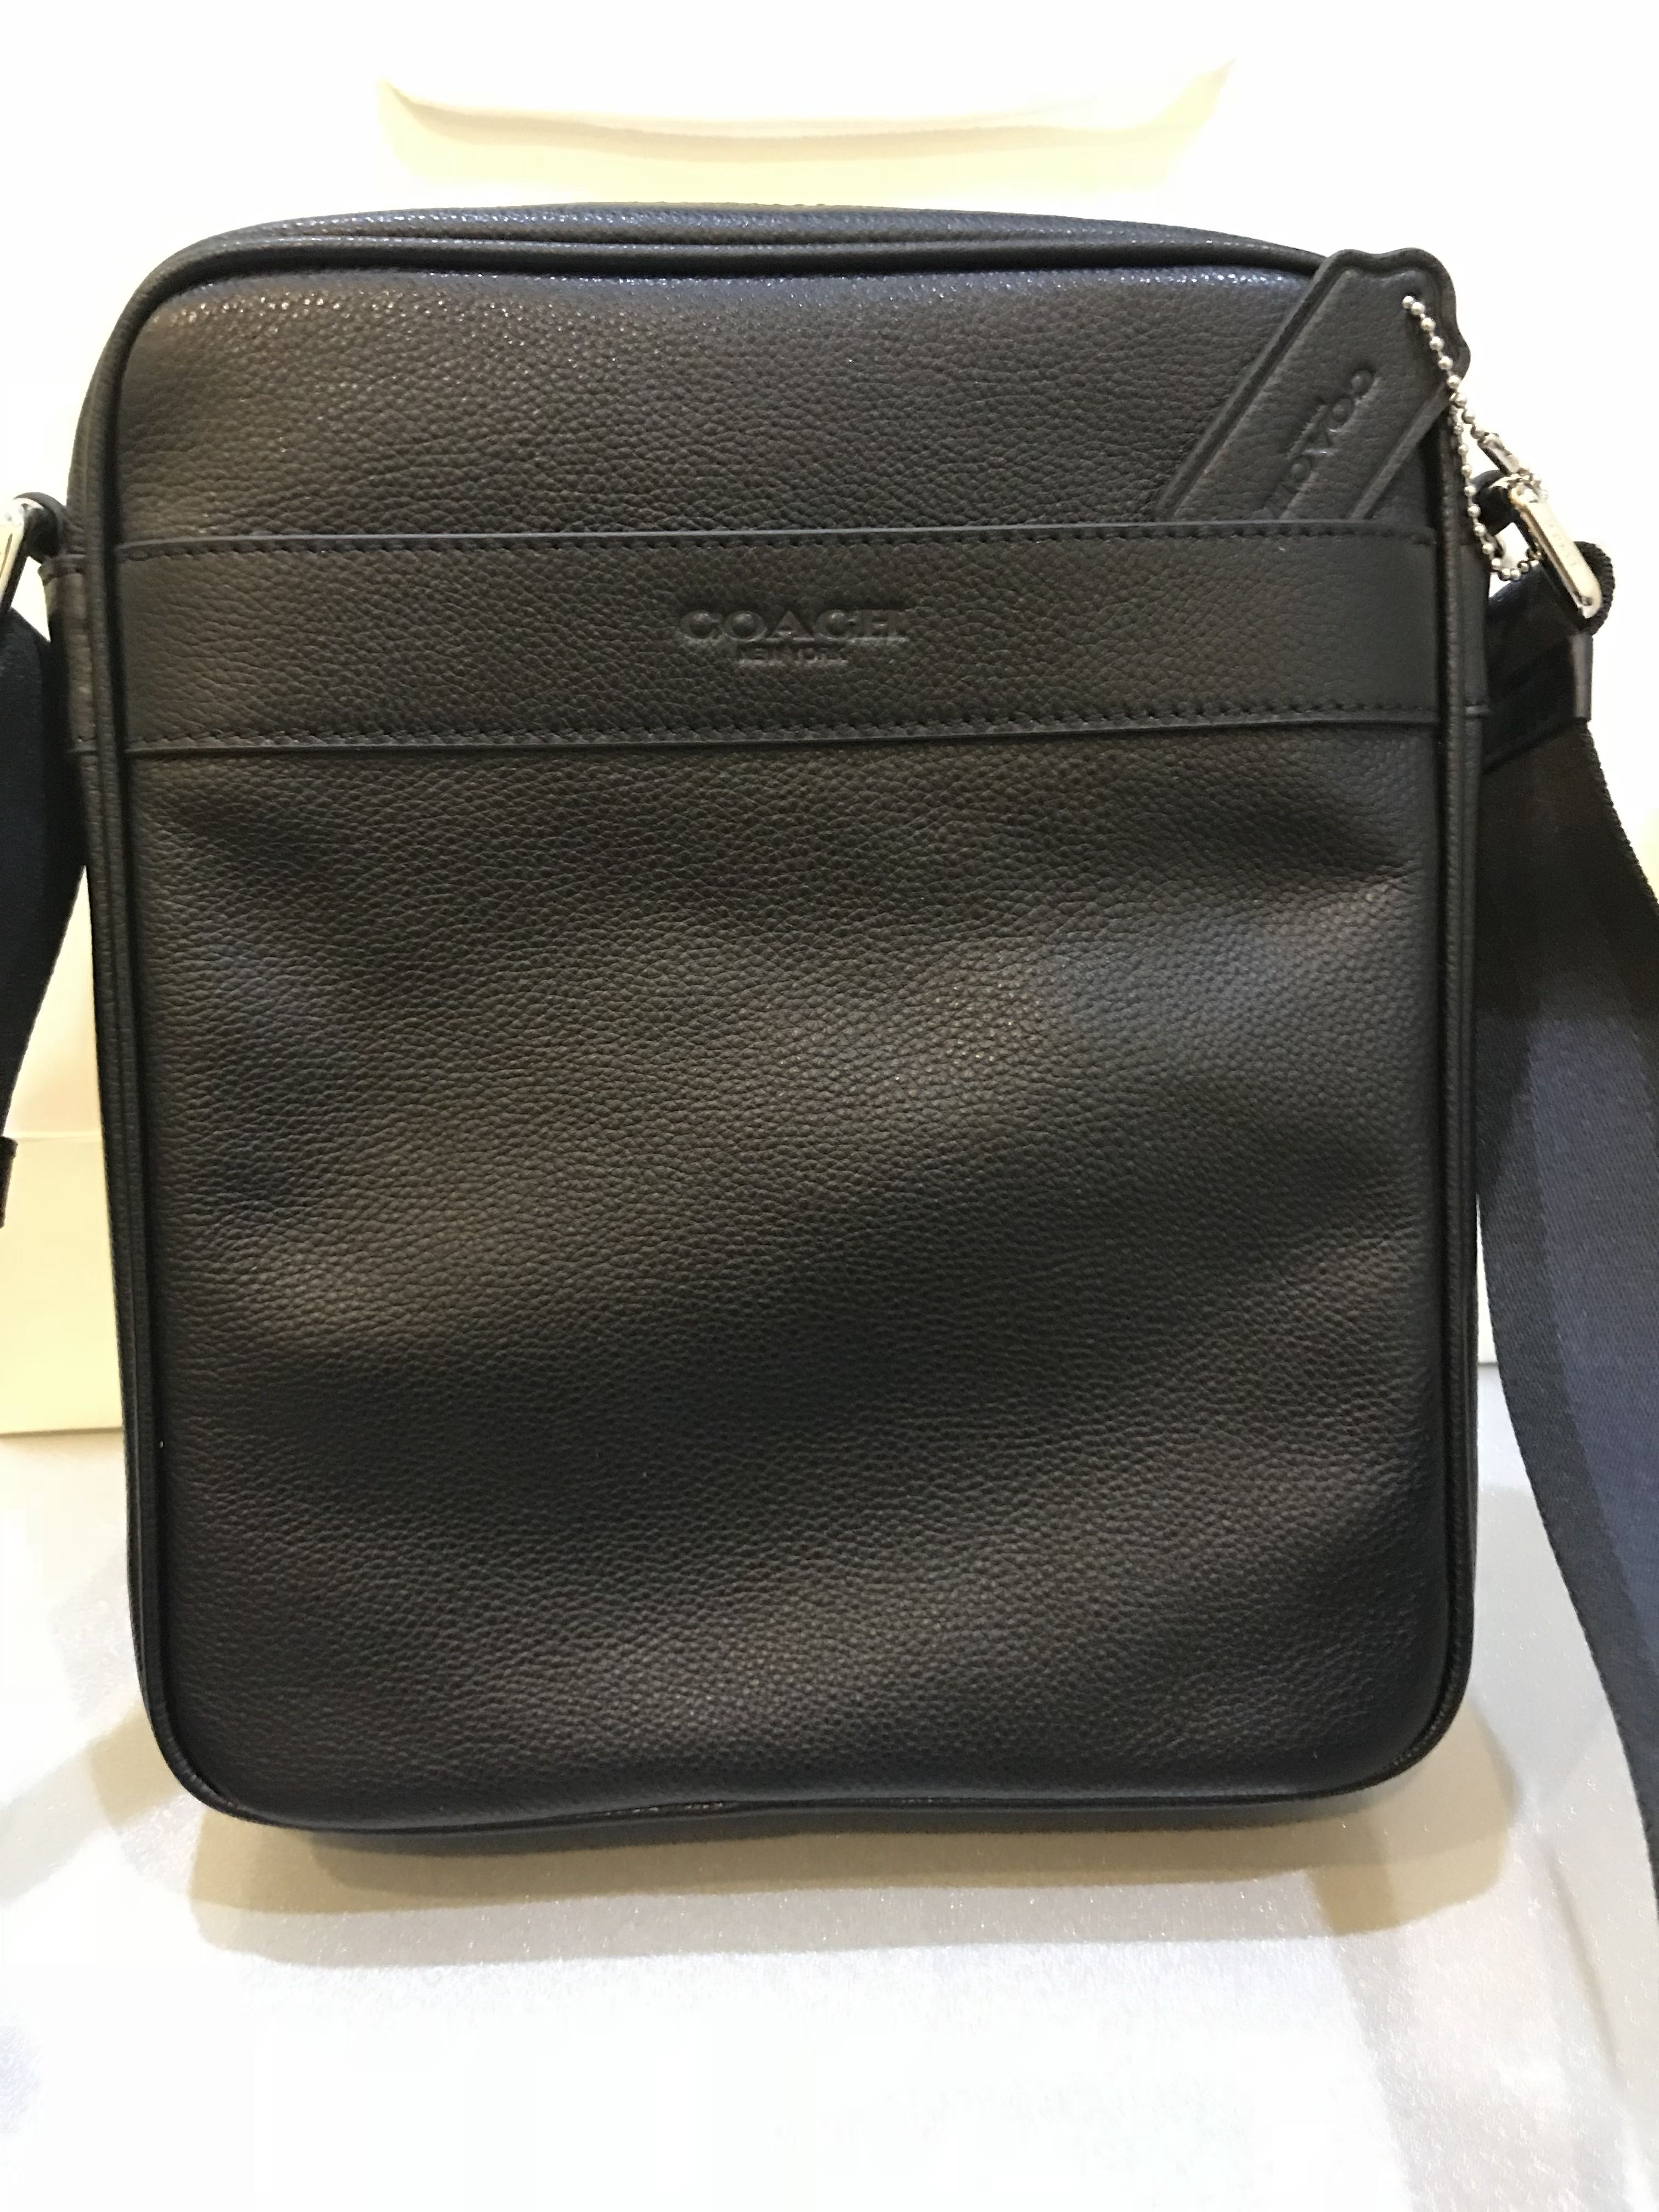 ddf5e920fa Coach Messenger Bag Original Coach sling bag